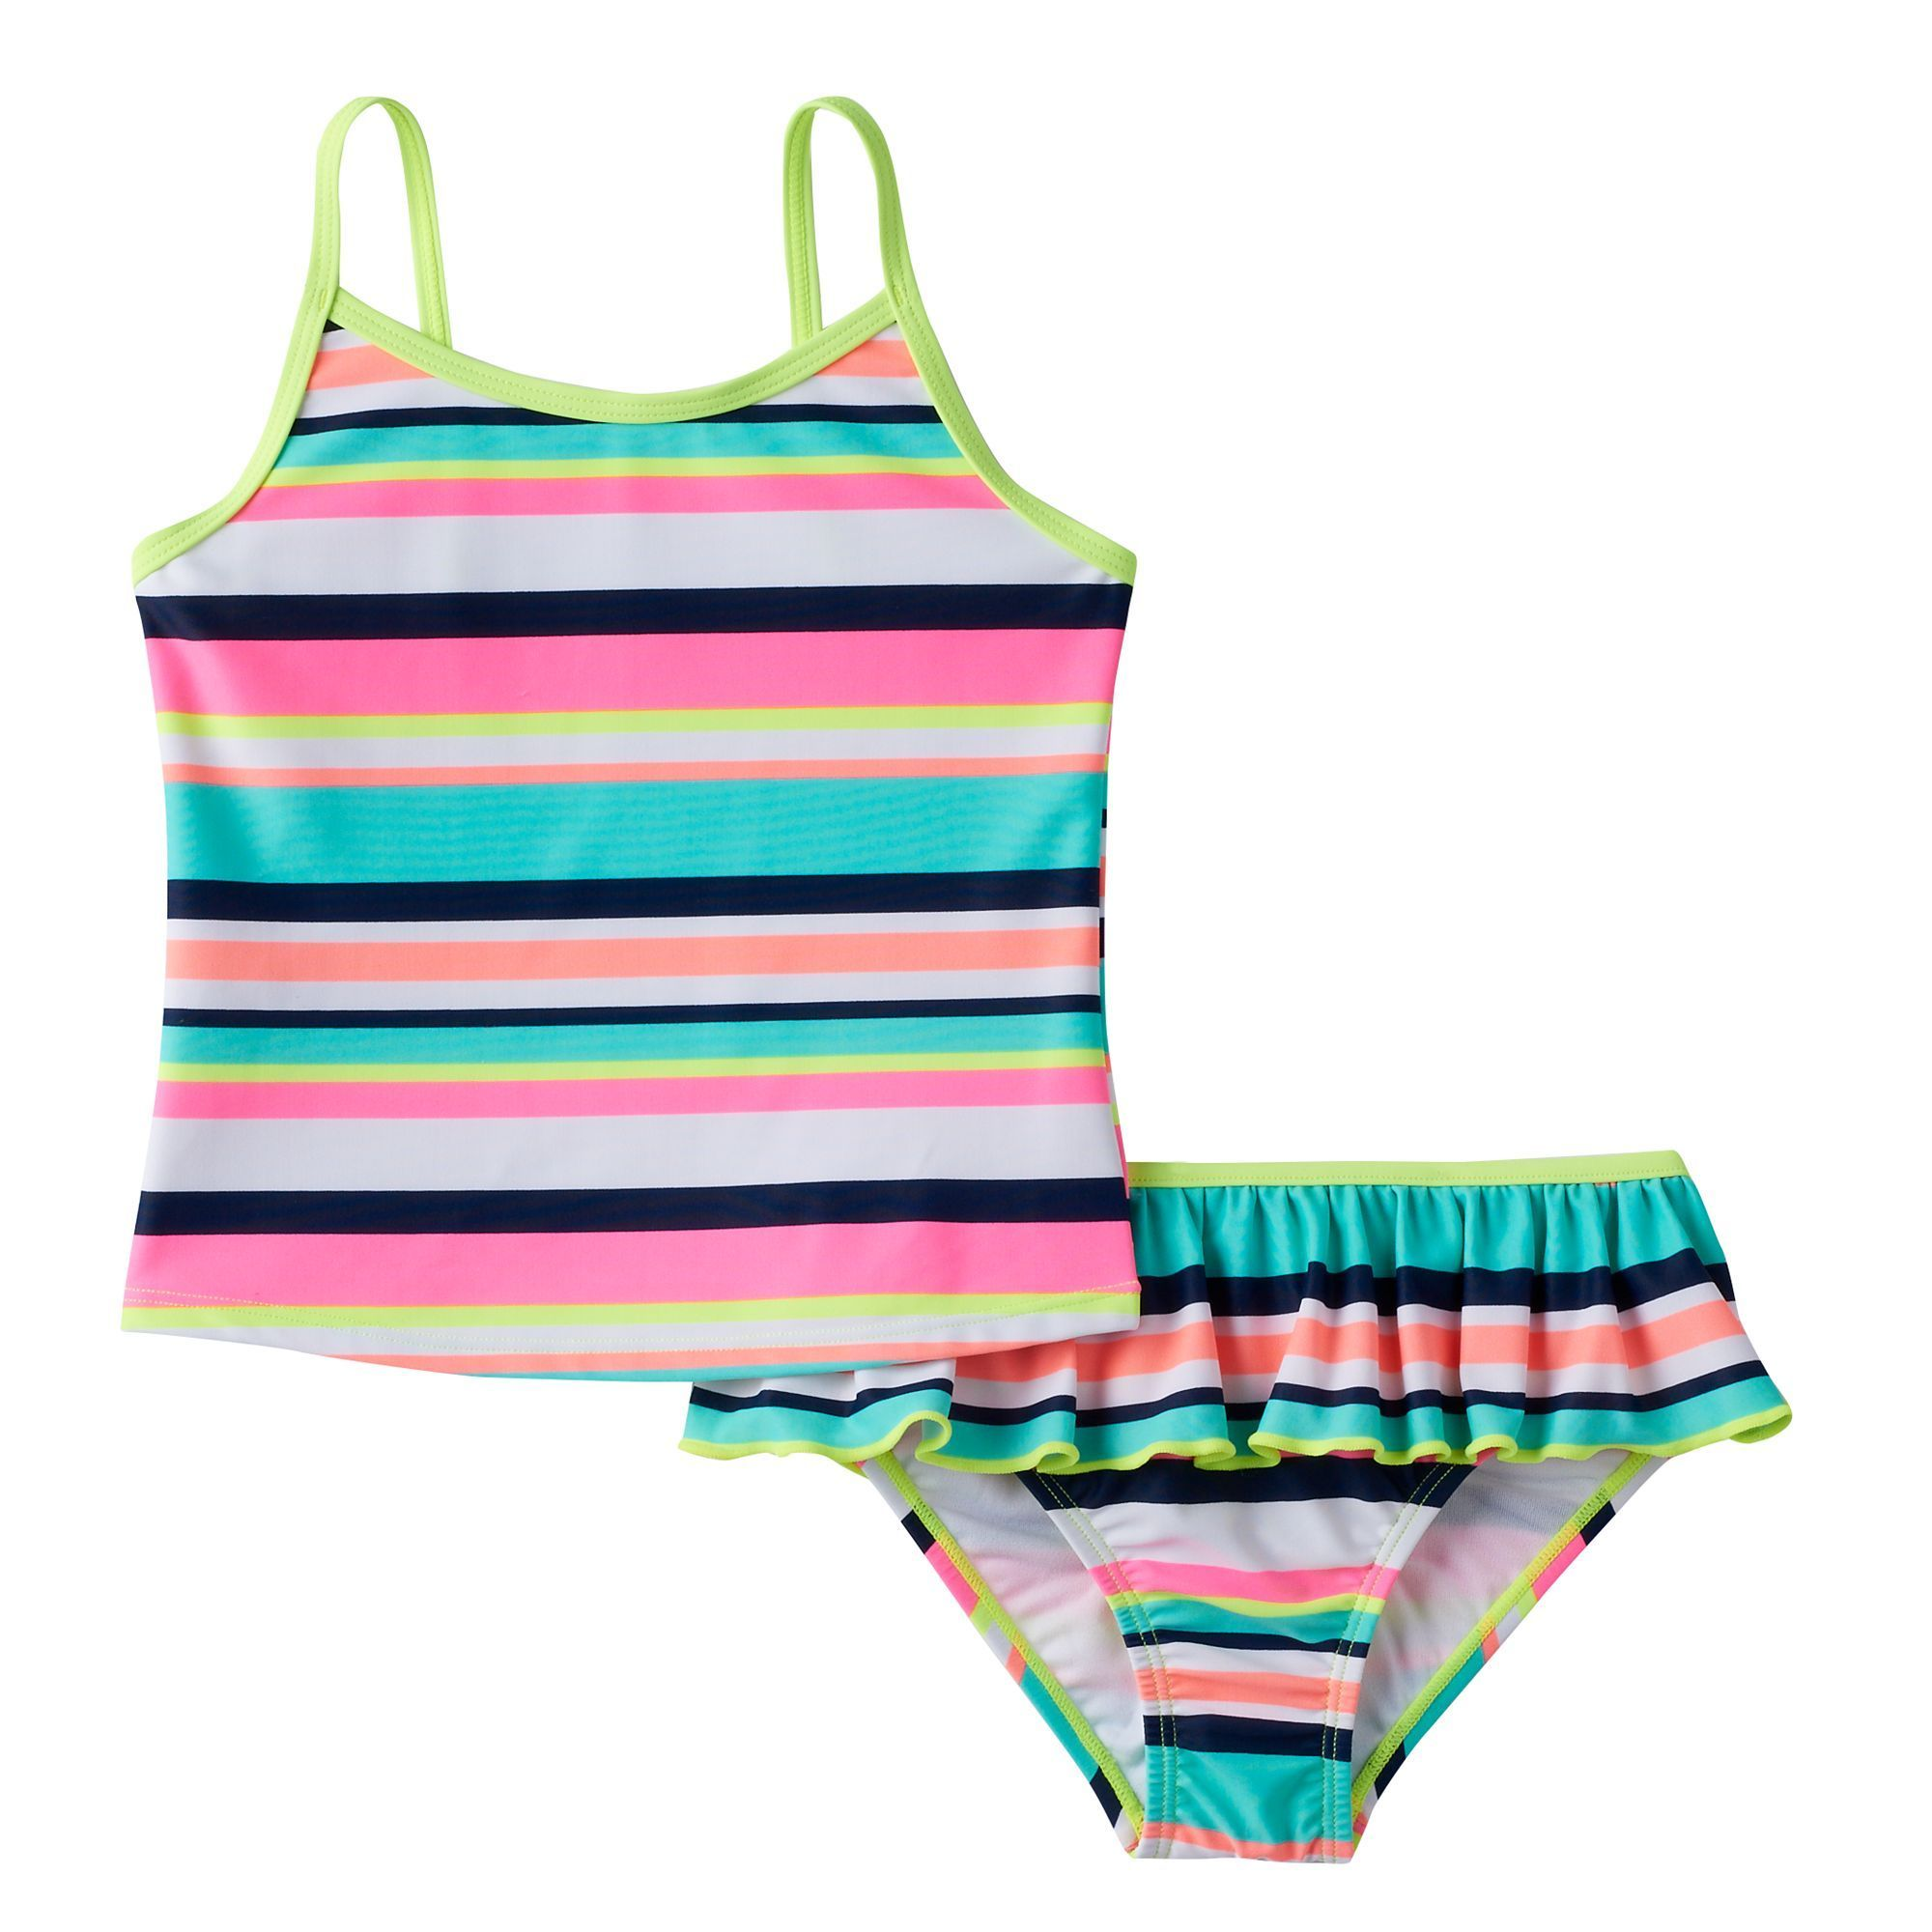 e94f29a4e5 Baby Girl Carter's Striped Tankini Top & Ruffled Bottoms Swimsuit Set,  Size: 12 Months, Brt Green